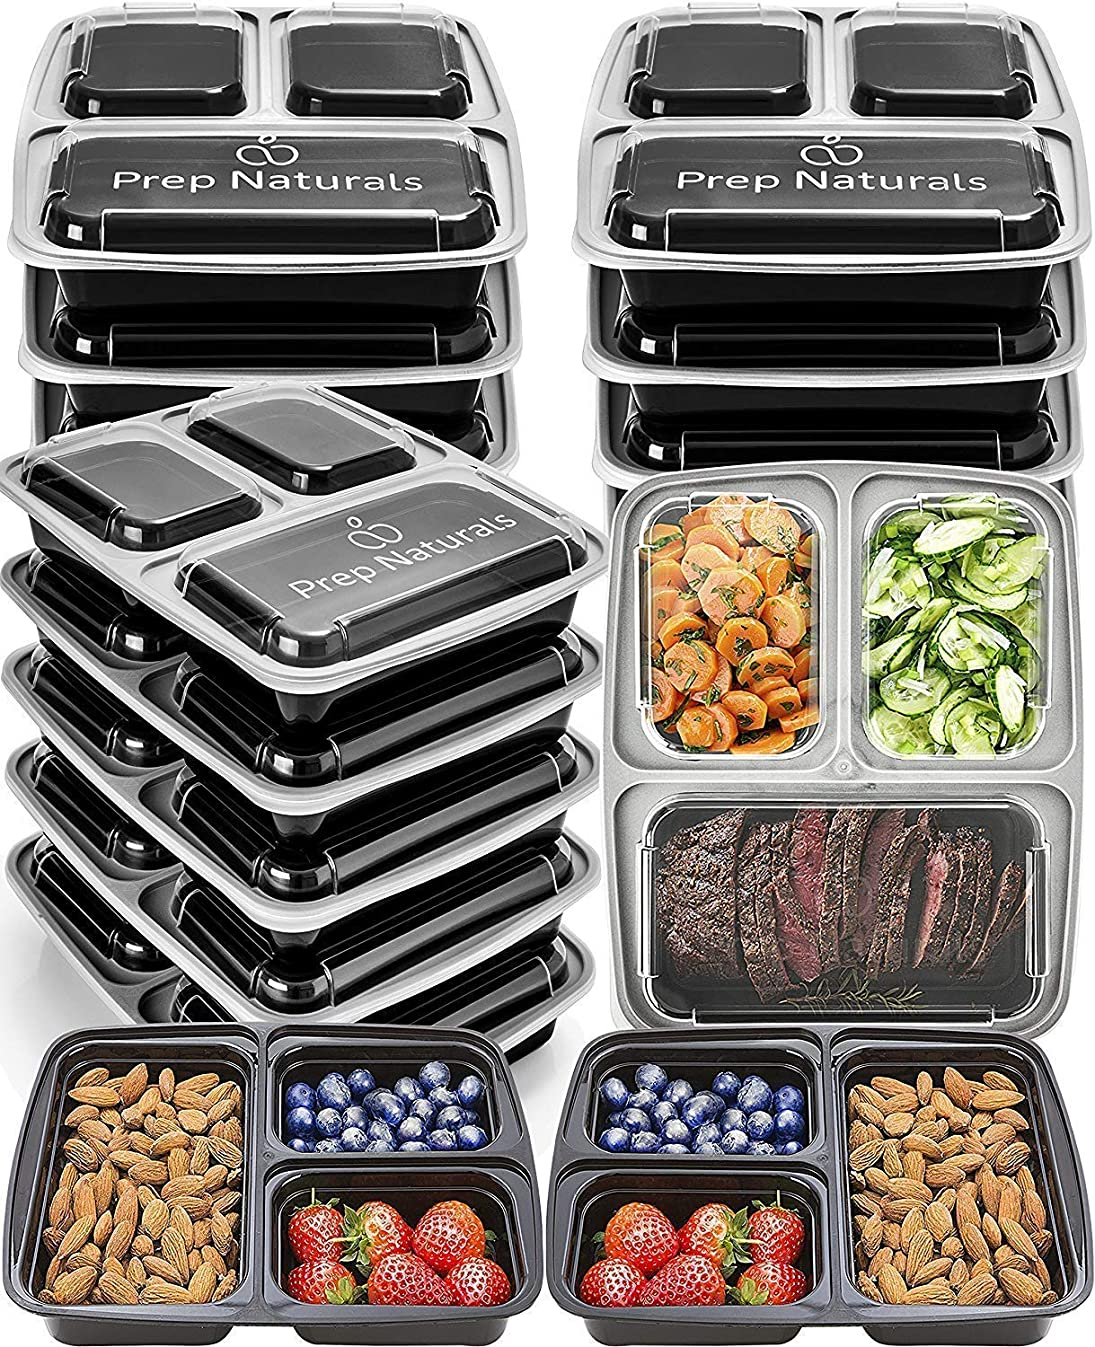 Meal Prep Containers 3 Compartment [15 pack, 32oz] - Bento Box Food Containers BPA Free Bento Boxes For Adults Lunch Containers - Plastic Containers with Lids Food Storage Containers with Lids